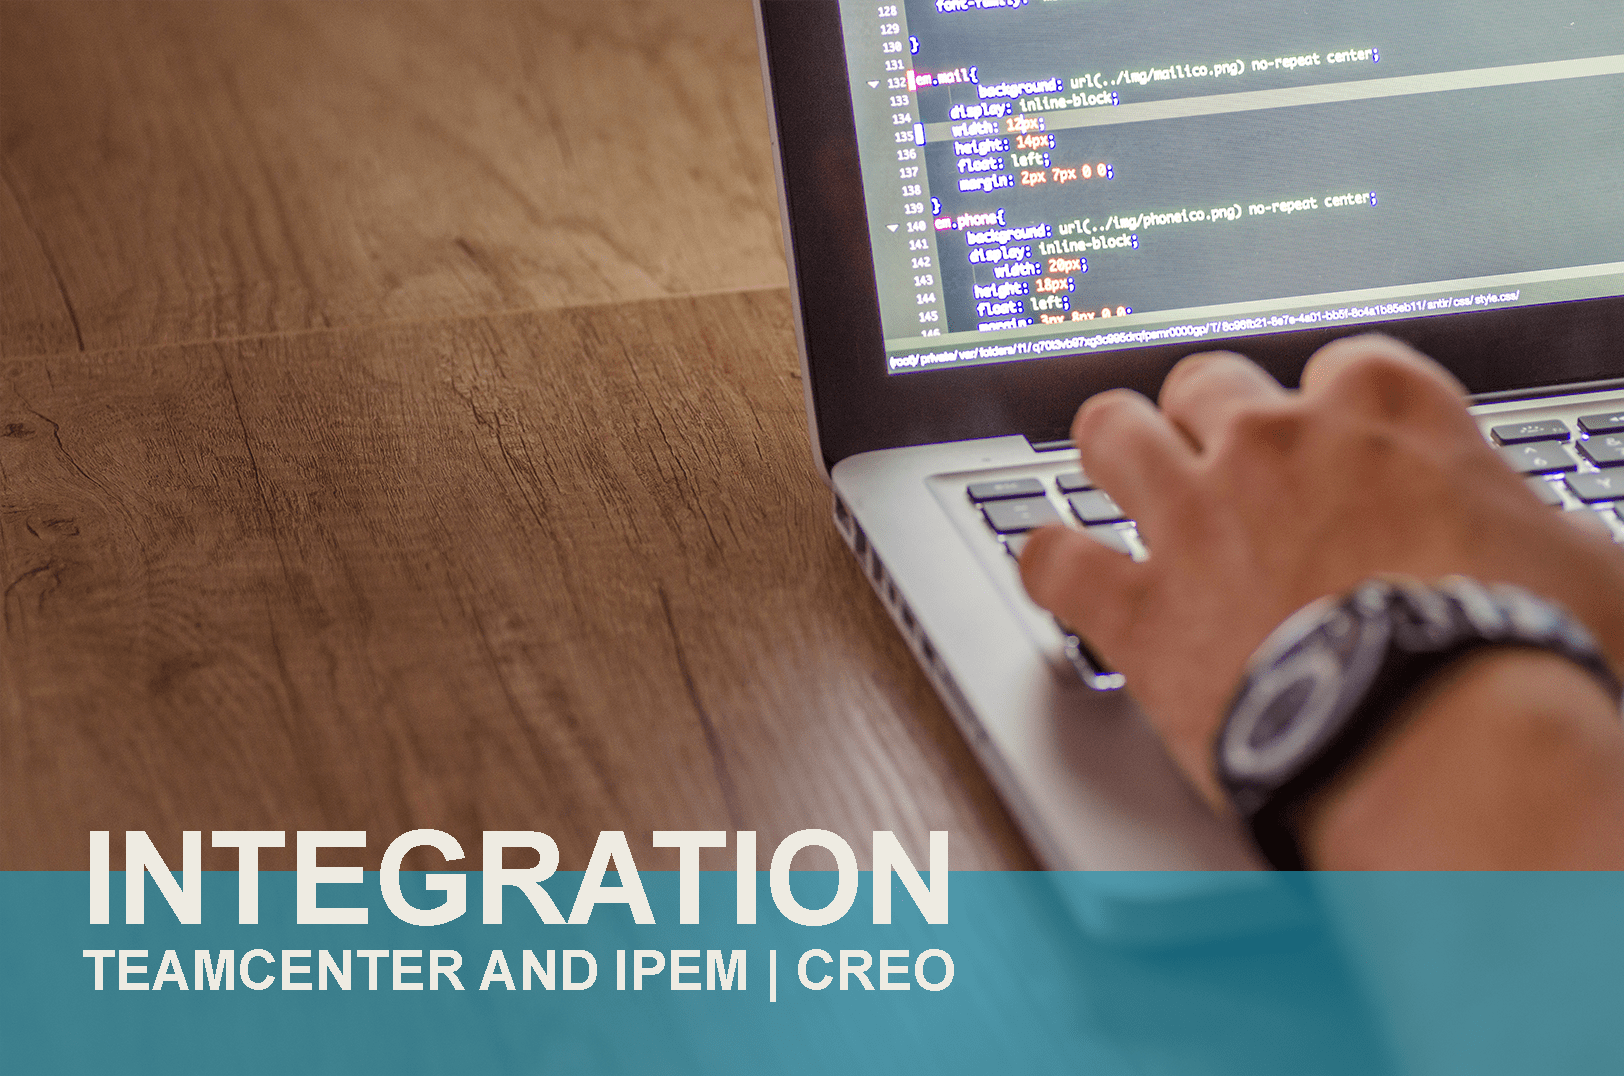 Teamcenter and IPEM – Creo Integration